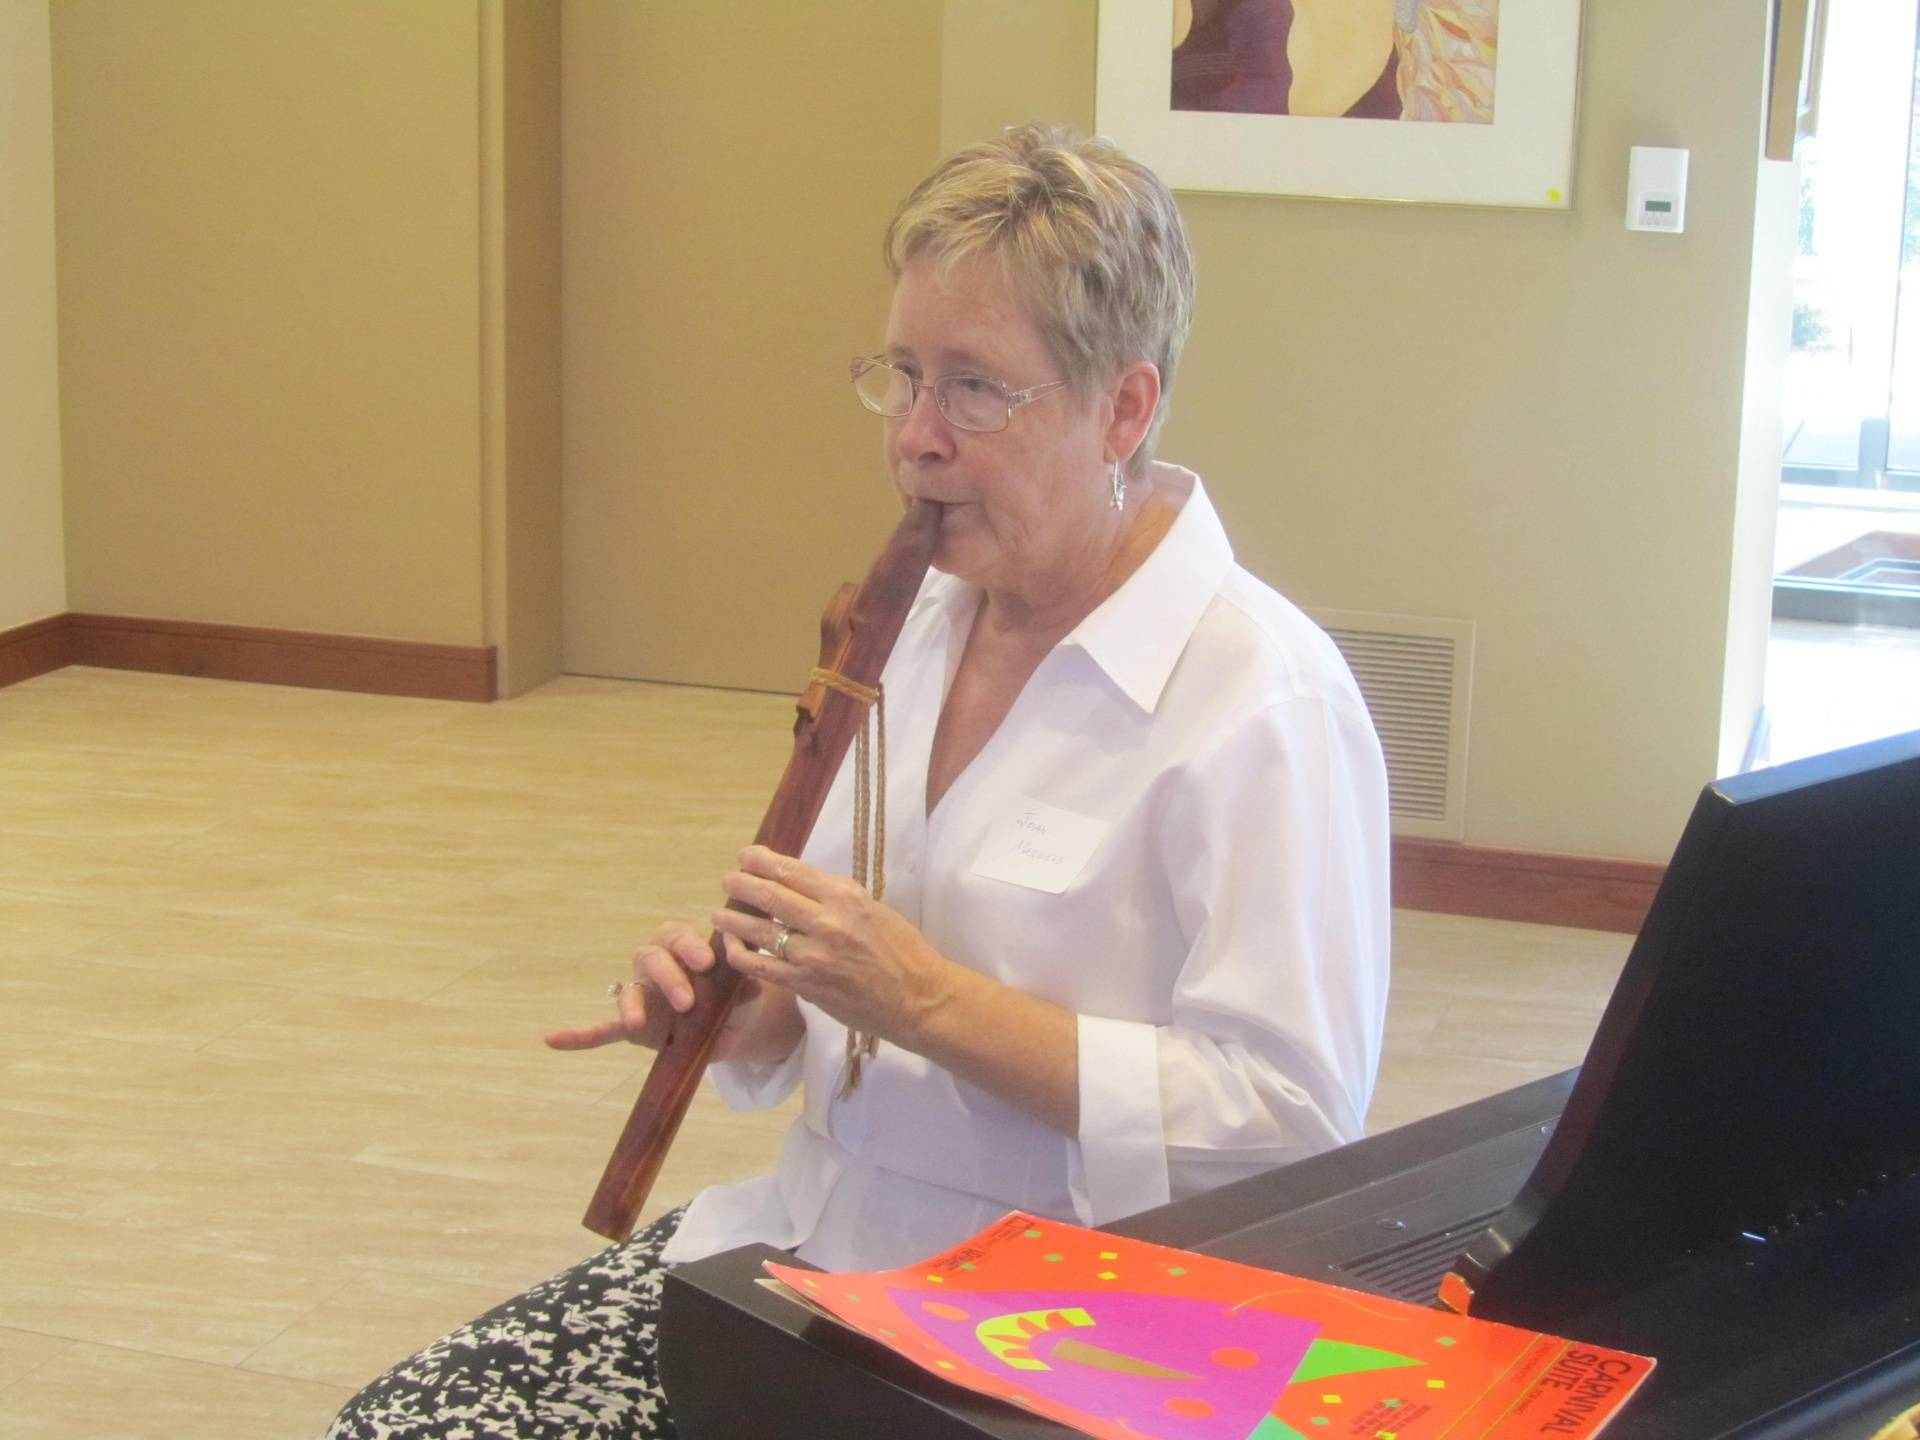 Joan mangels Playing the Native American Flute at the Reception